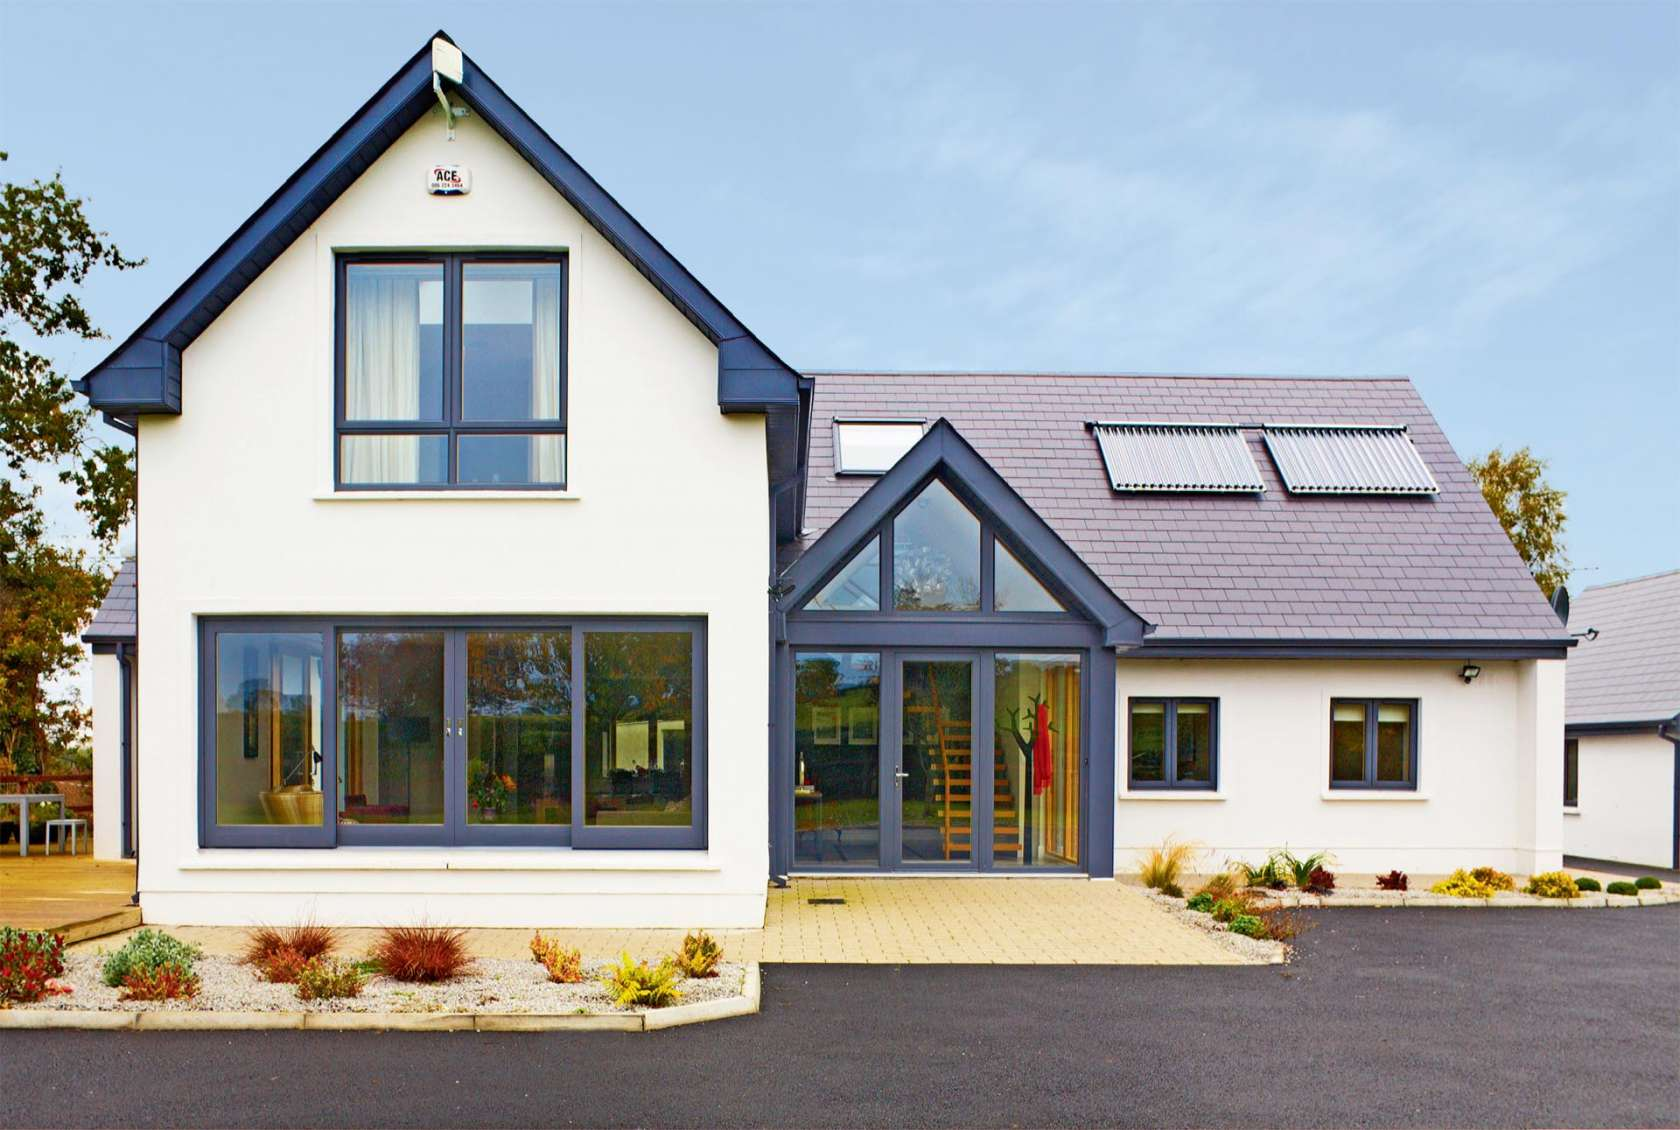 Contemporary bungalow house plans ireland for Irish home designs